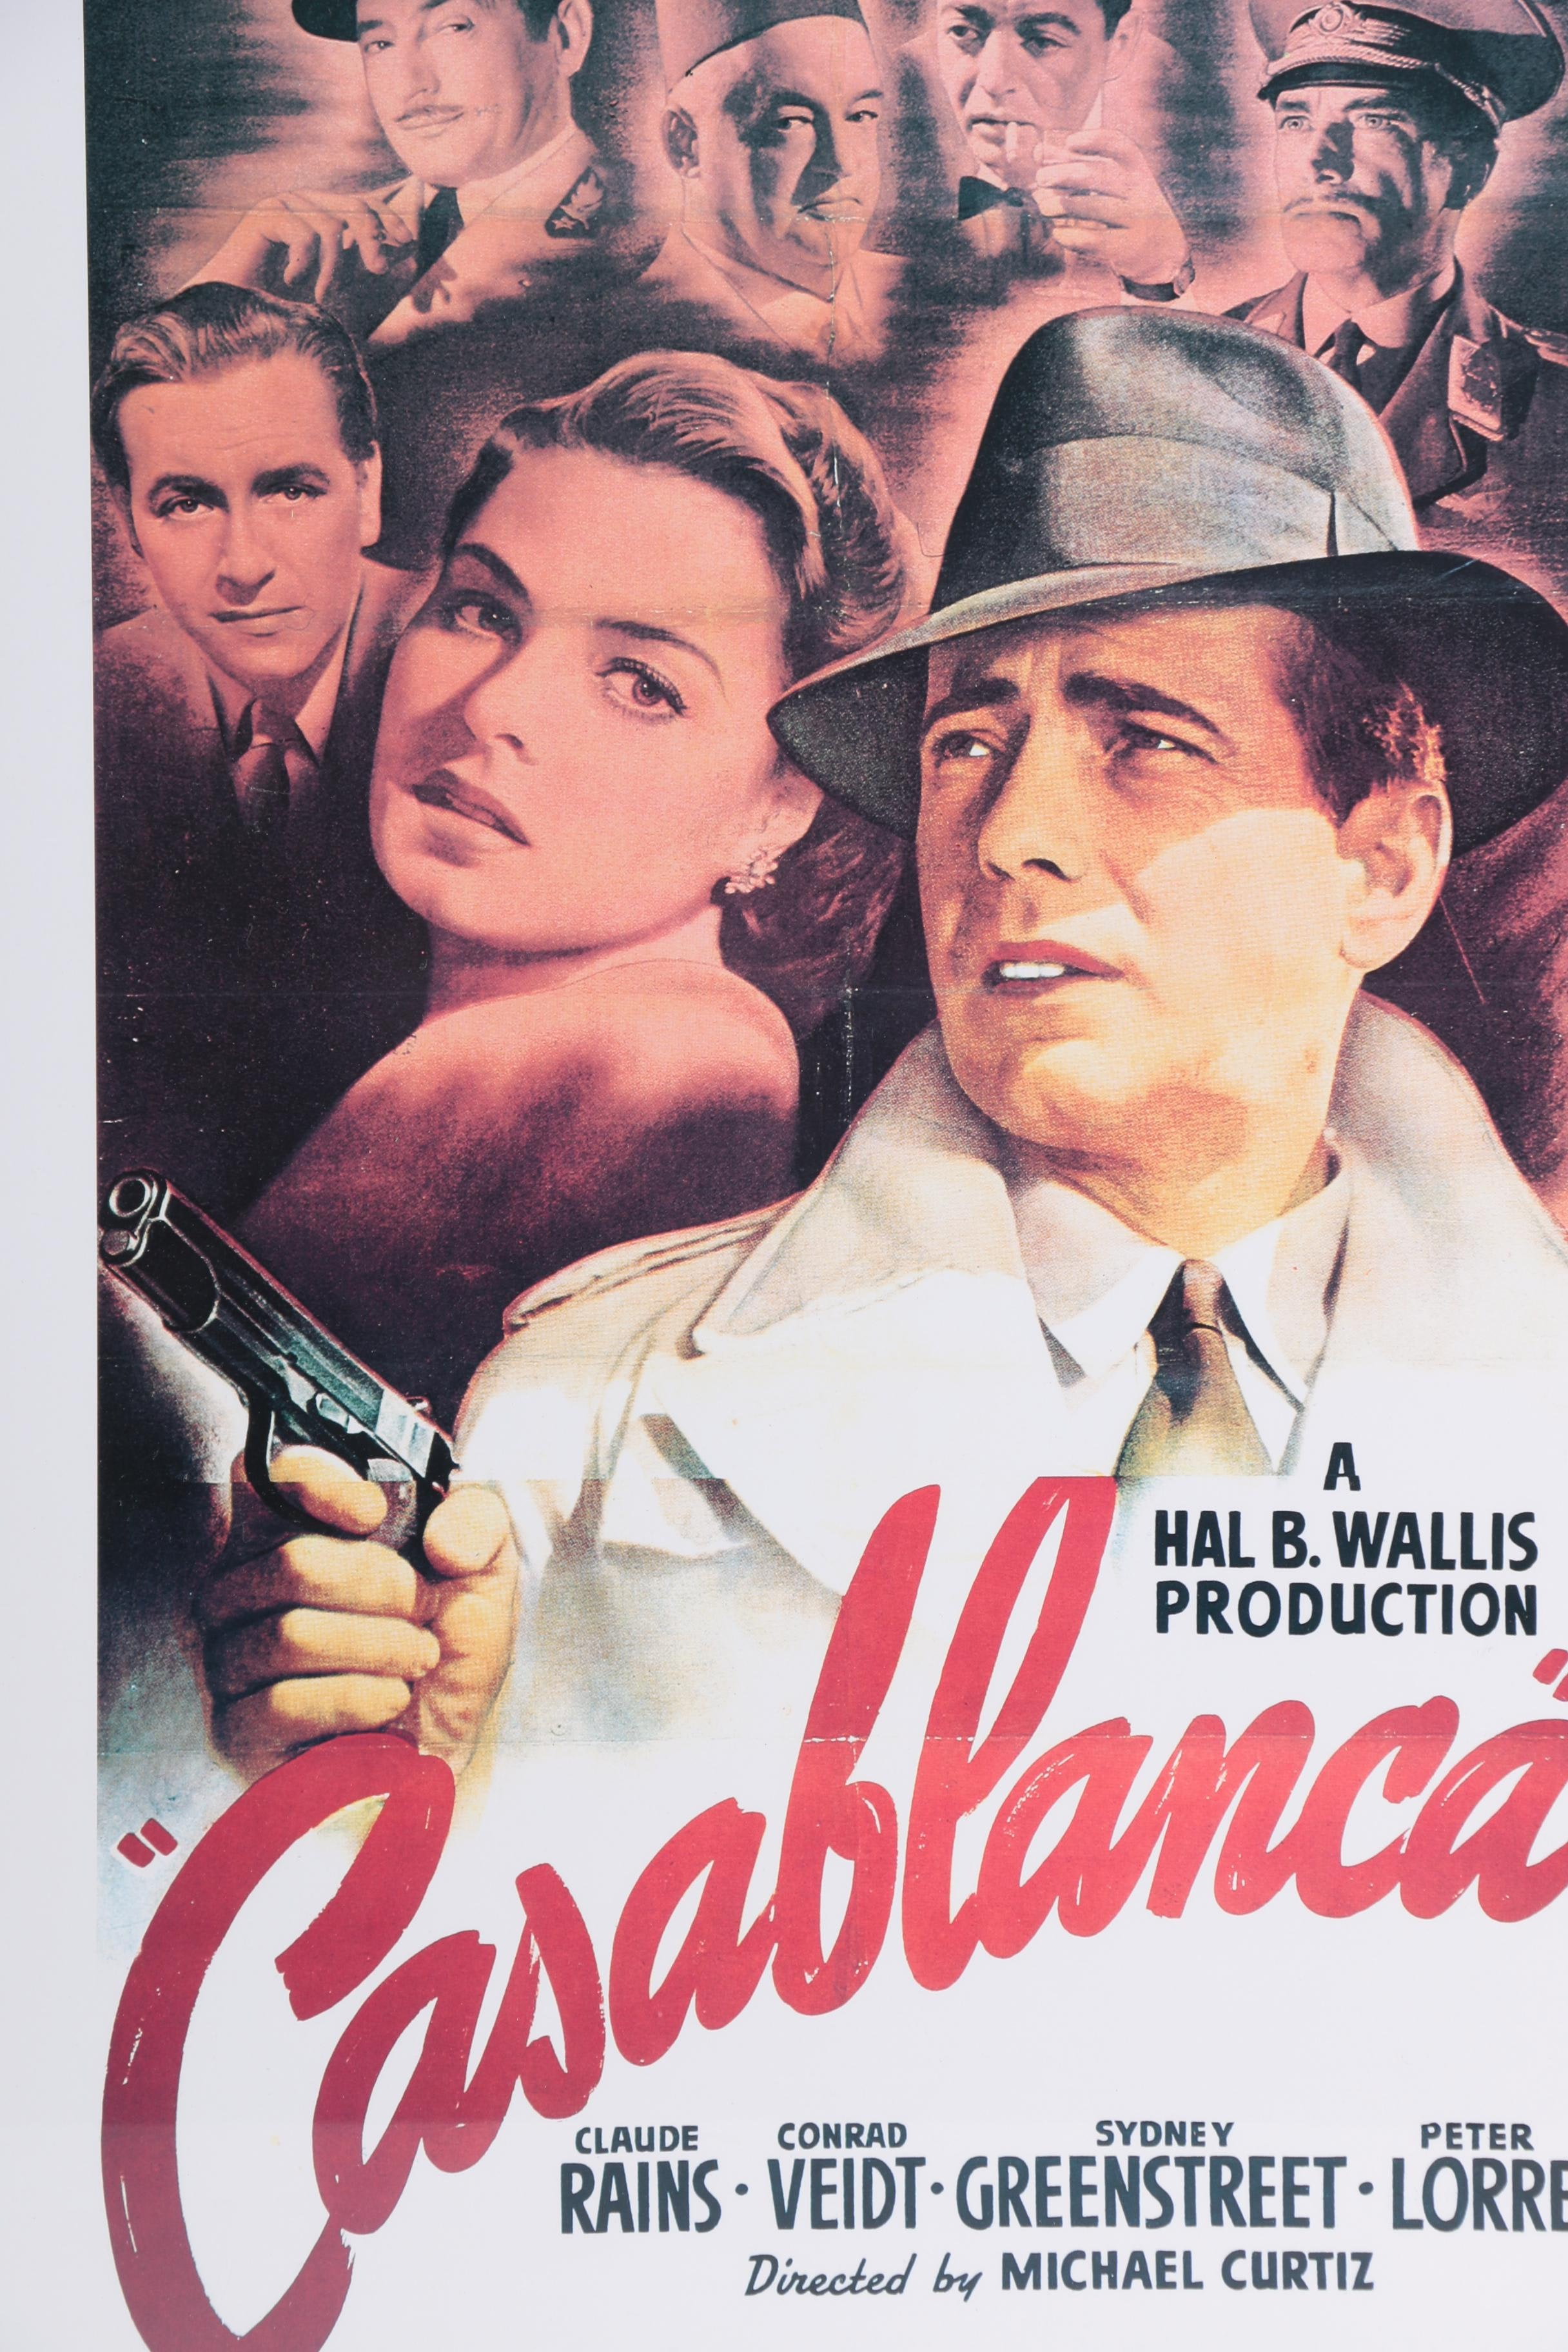 casablanca an historical movie essay Essay 1942, the year of the creation of one of the most historical movies known to date that movie, casablanca, based on the play everybody wants to go to rick's, still captivates audiences around the world the setting of the movie is casablanca, morocco during the second world war.